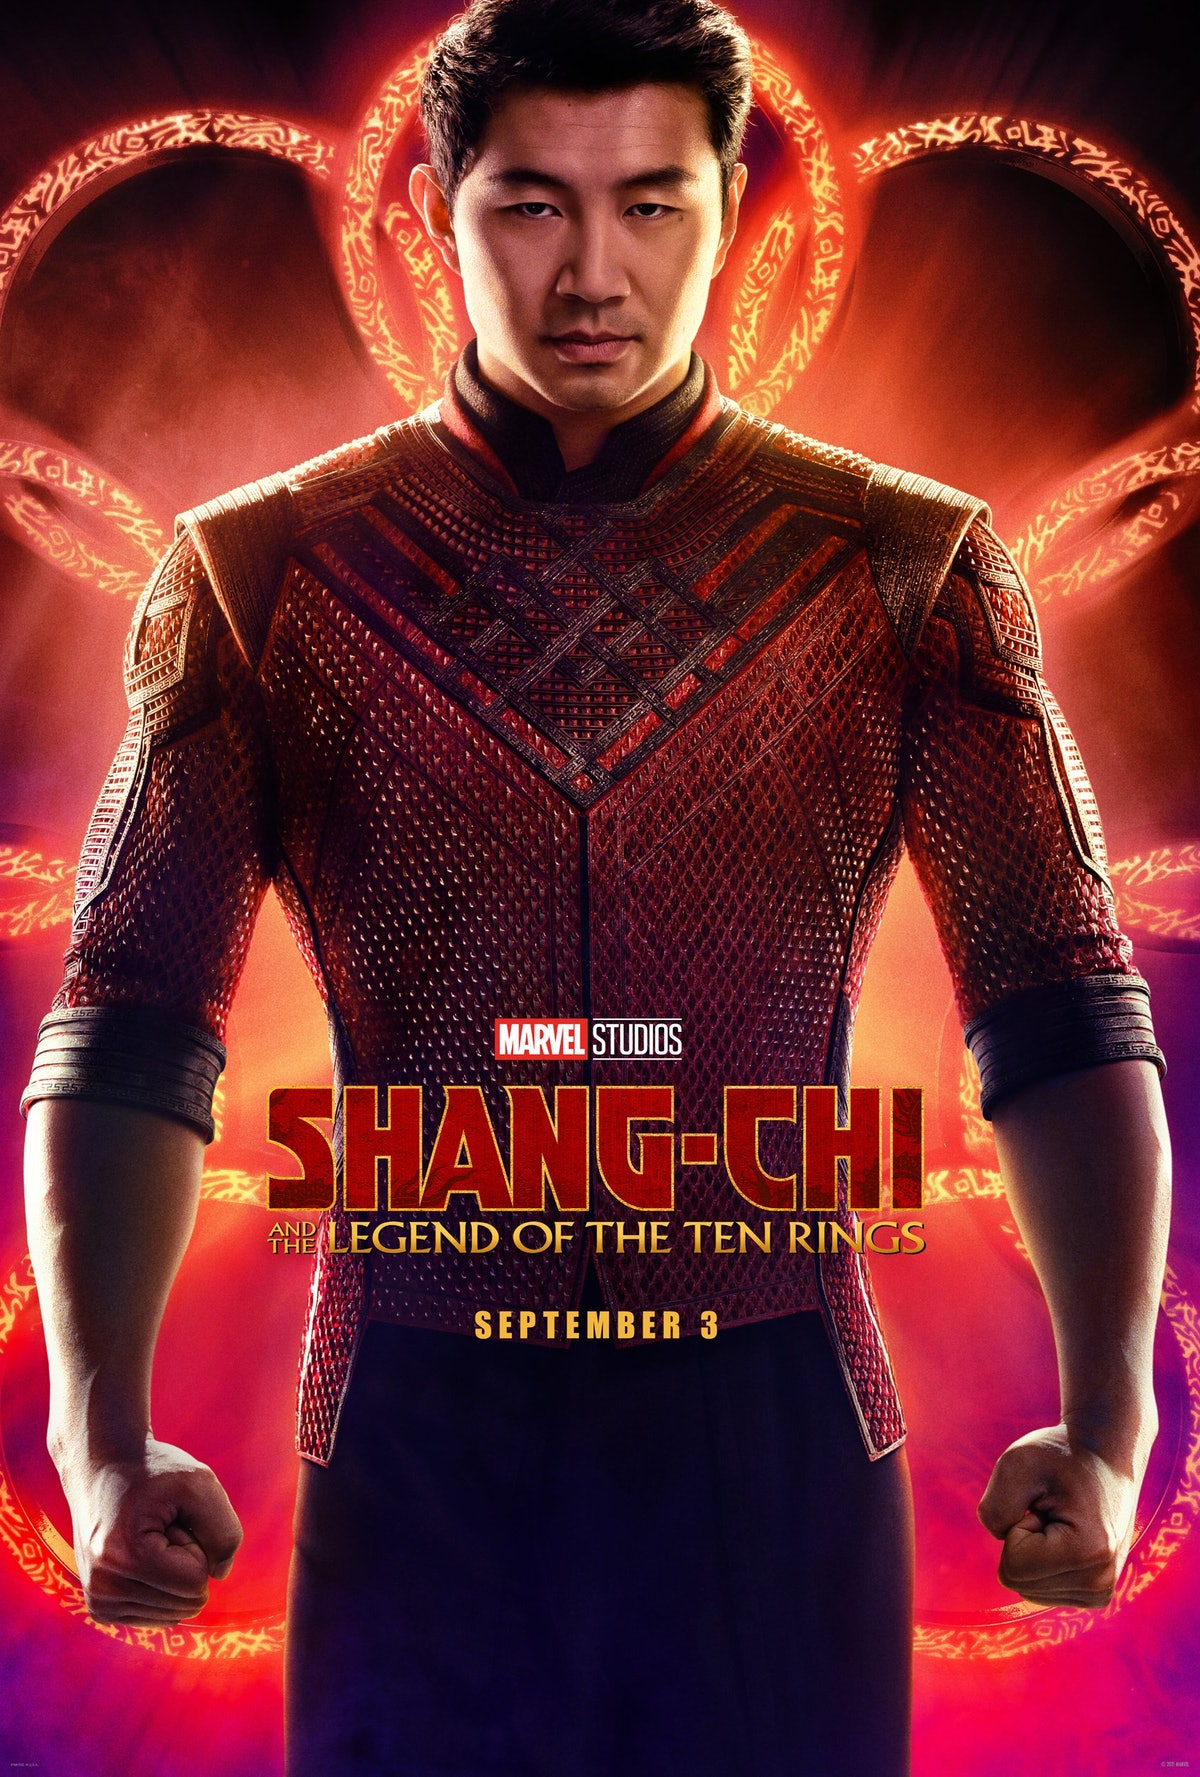 The full poster for Shang-Chi & The Legend of the Ten Rings